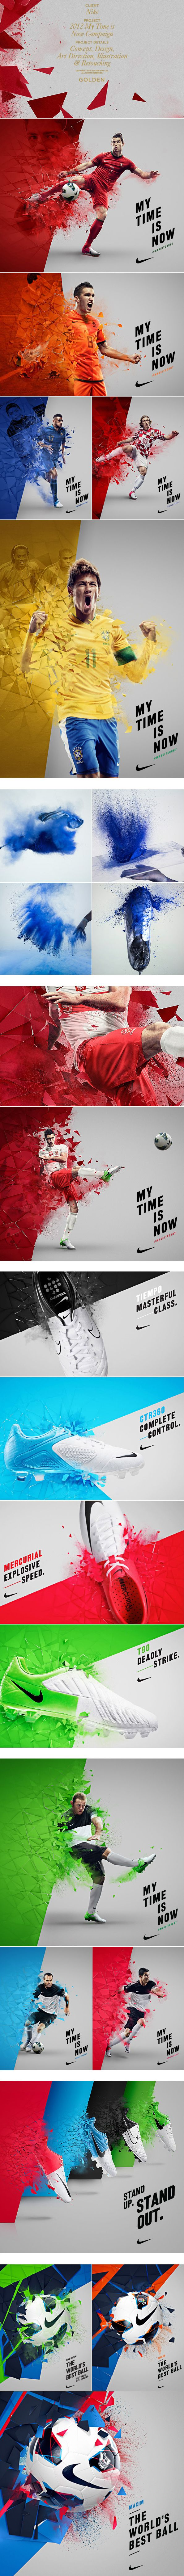 Nike 2012 My Time Is Now Campaign